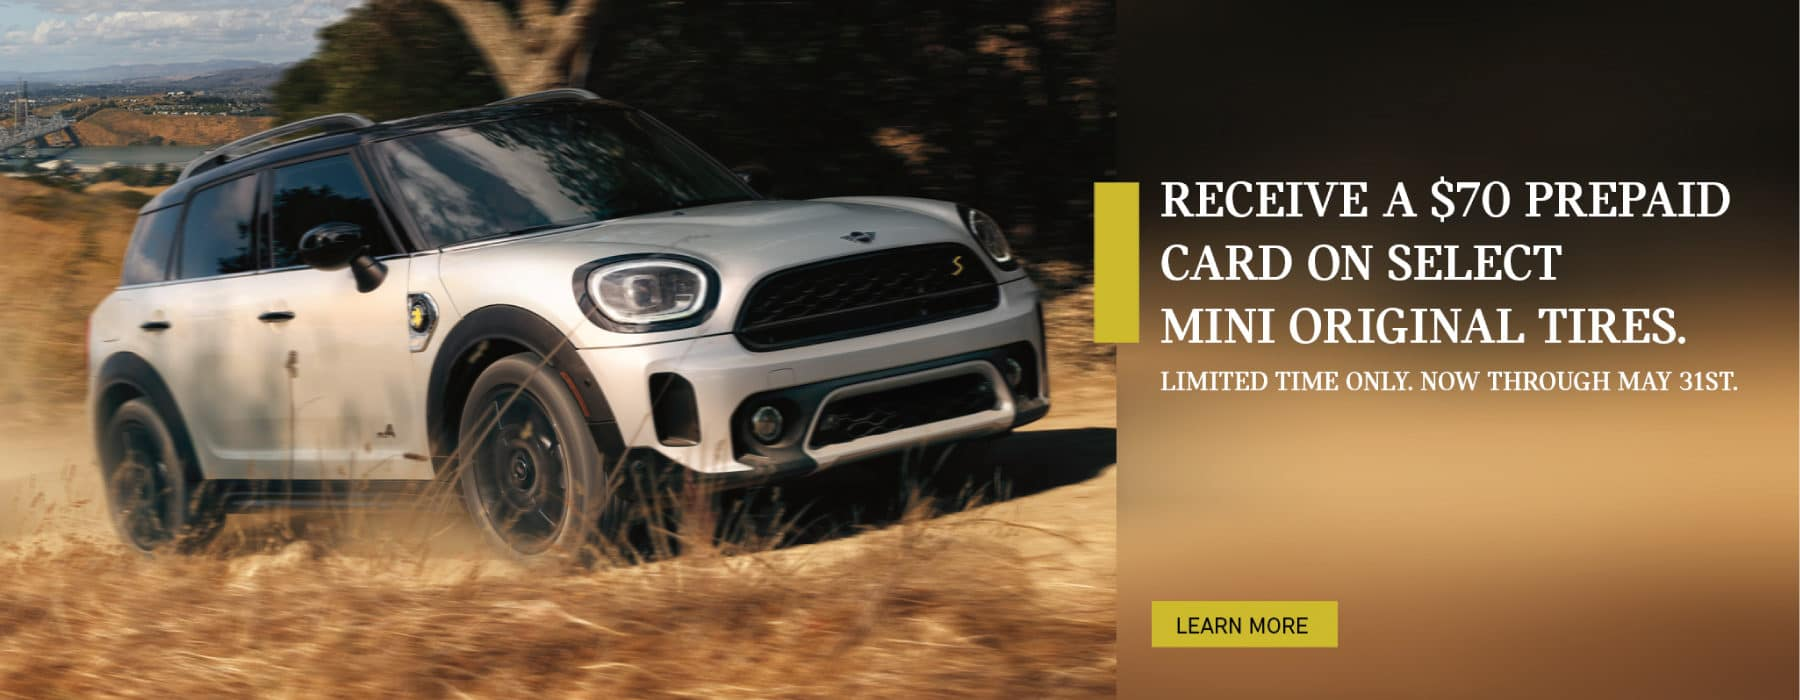 RECEIVE A $70 PREPAID CARD ON SELECT MINI ORIGINAL TIRES. Limited time only.